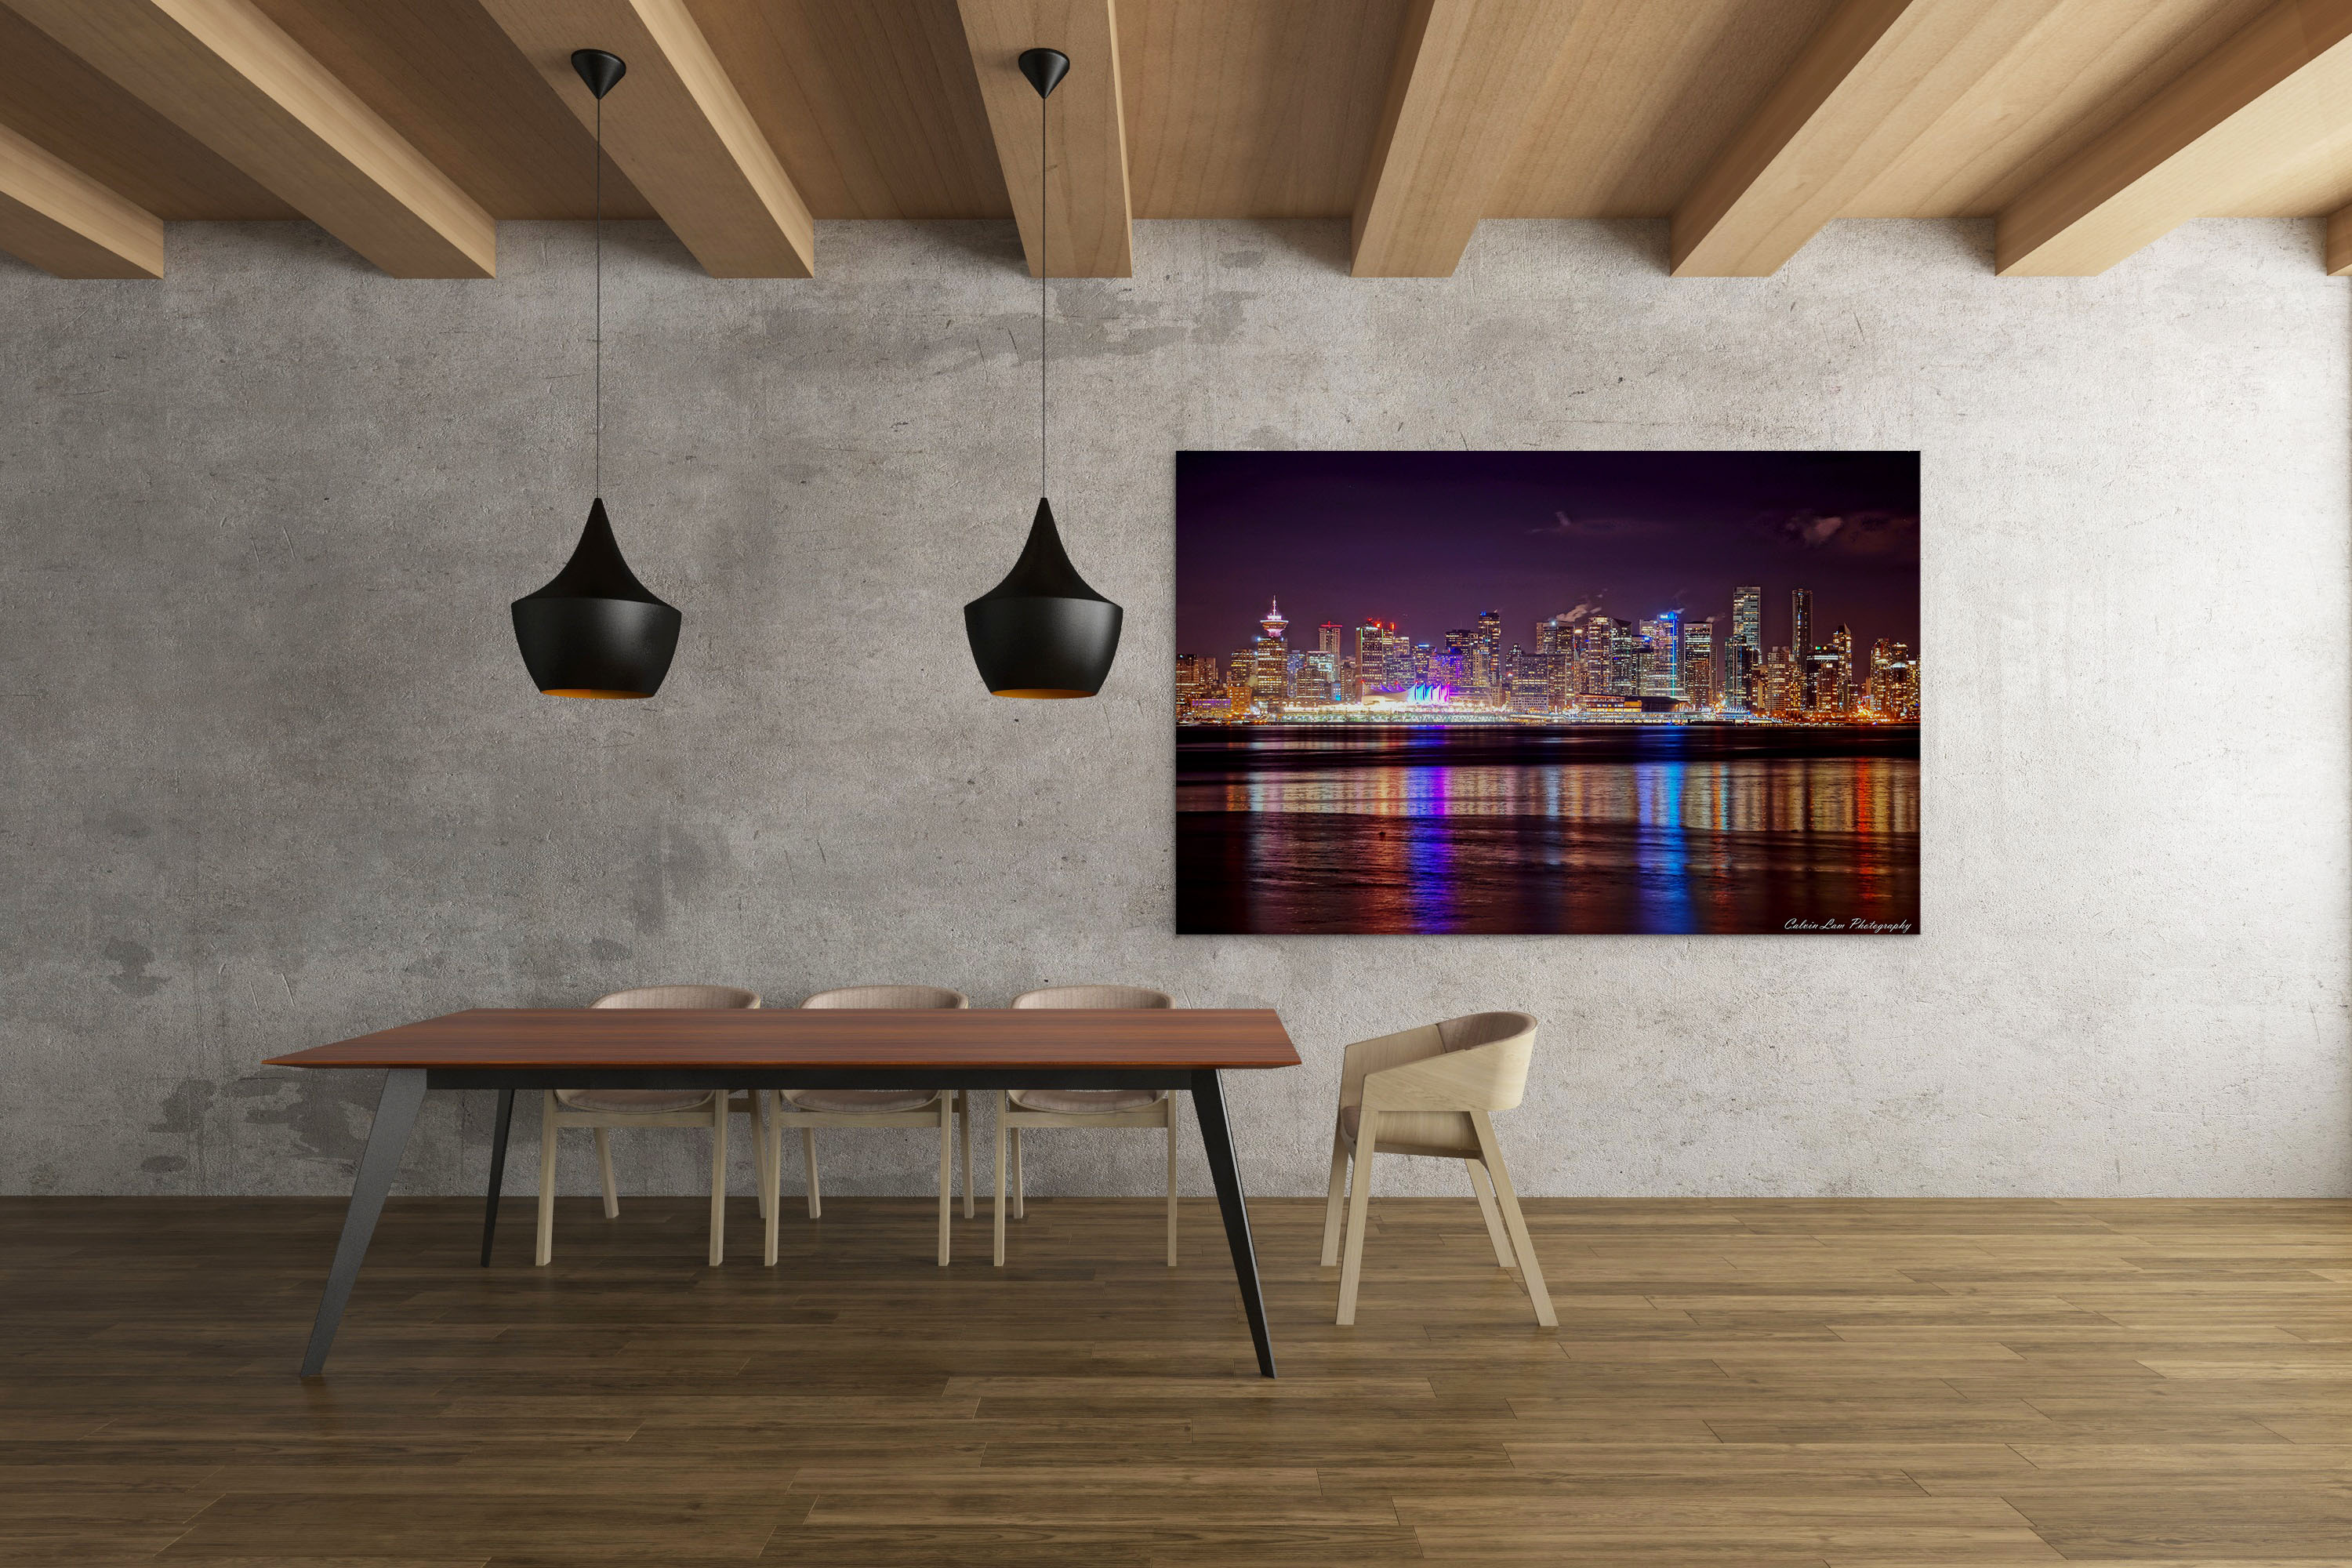 Now you get any of these 9 canvas-worthy Instagram photos on your own wall